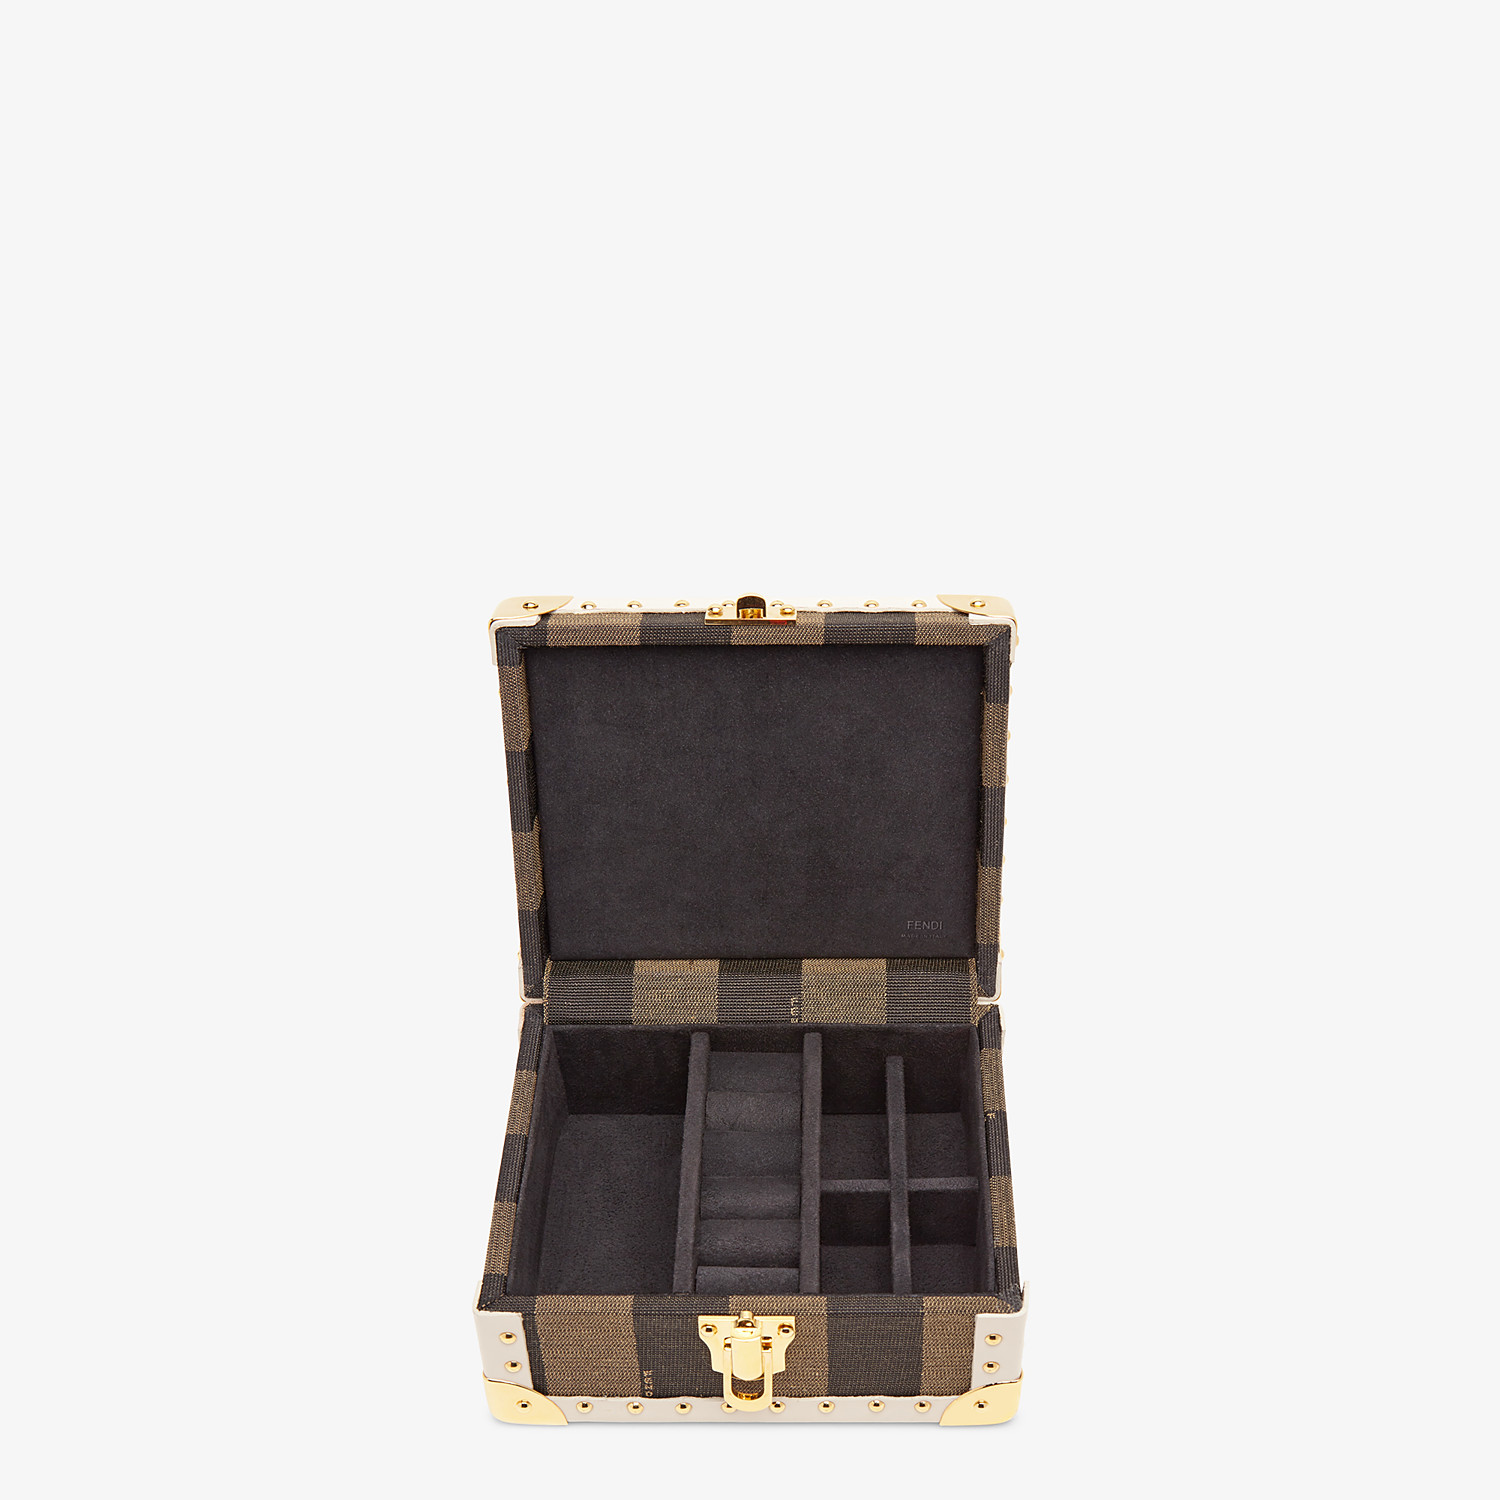 FENDI TRAVEL CASE SMALL - Travel case in brown jacquard - view 2 detail